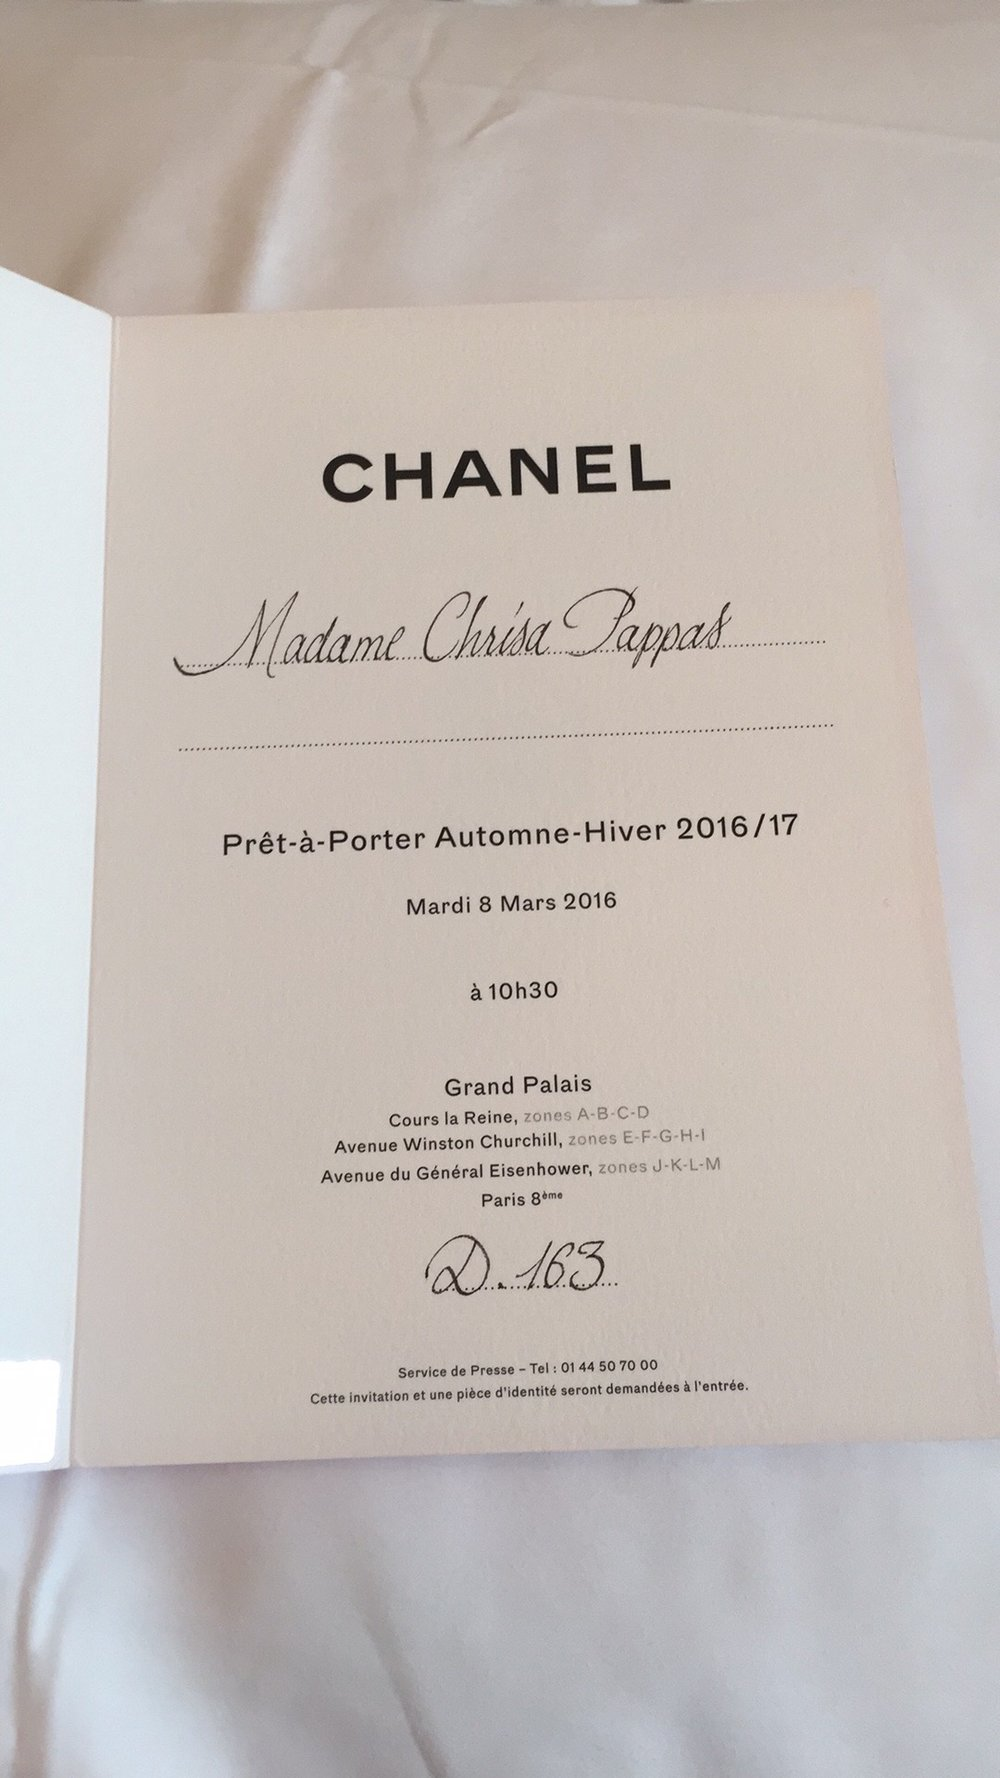 Paris Fashion Week Chanel Fall 2016 Invitation.